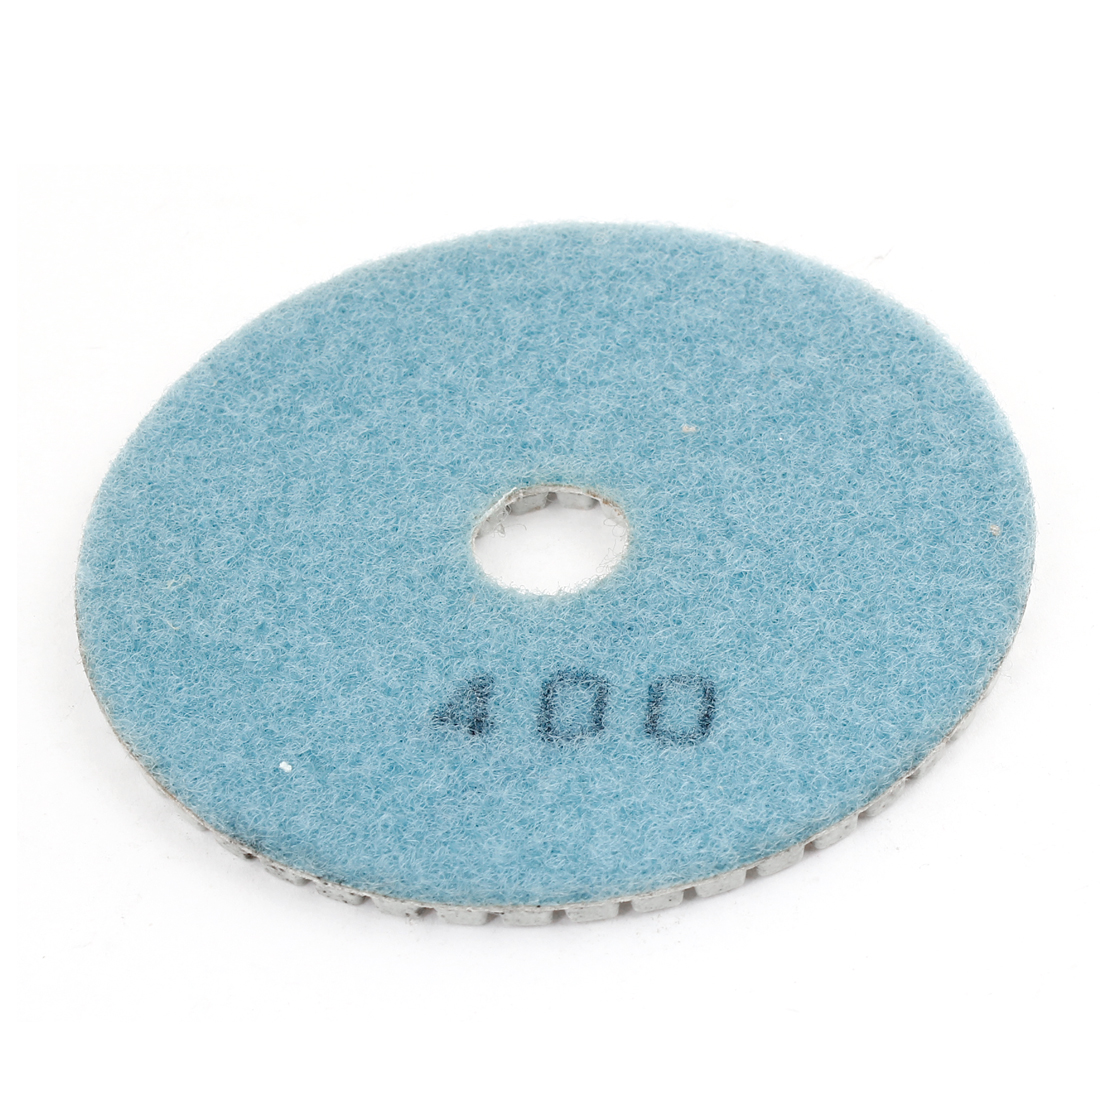 16x100x4mm 400 Grit Teal Blue Gray Tile Polisher Diamond Polishing Pad